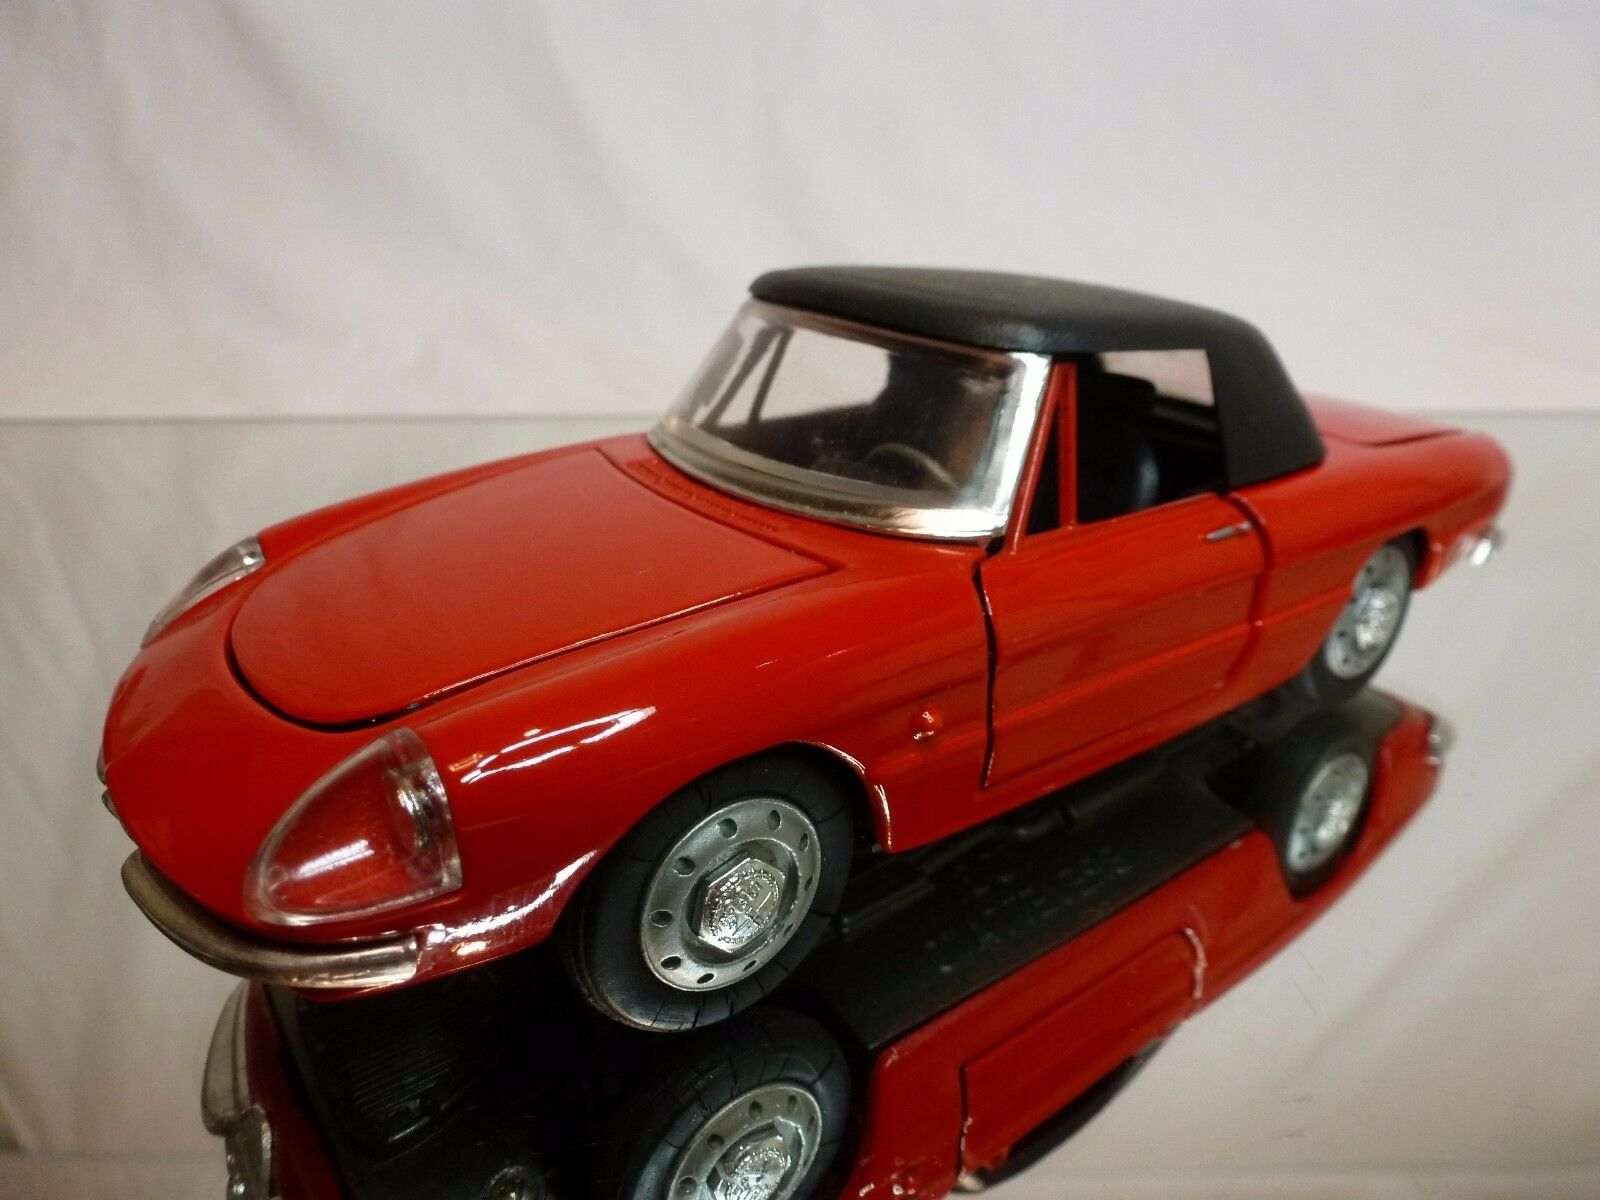 TOGI 9 68 ALFA ROMEO SPIDER + CLOSED TOP - rouge 1 23 - VERY GOOD CONDITION